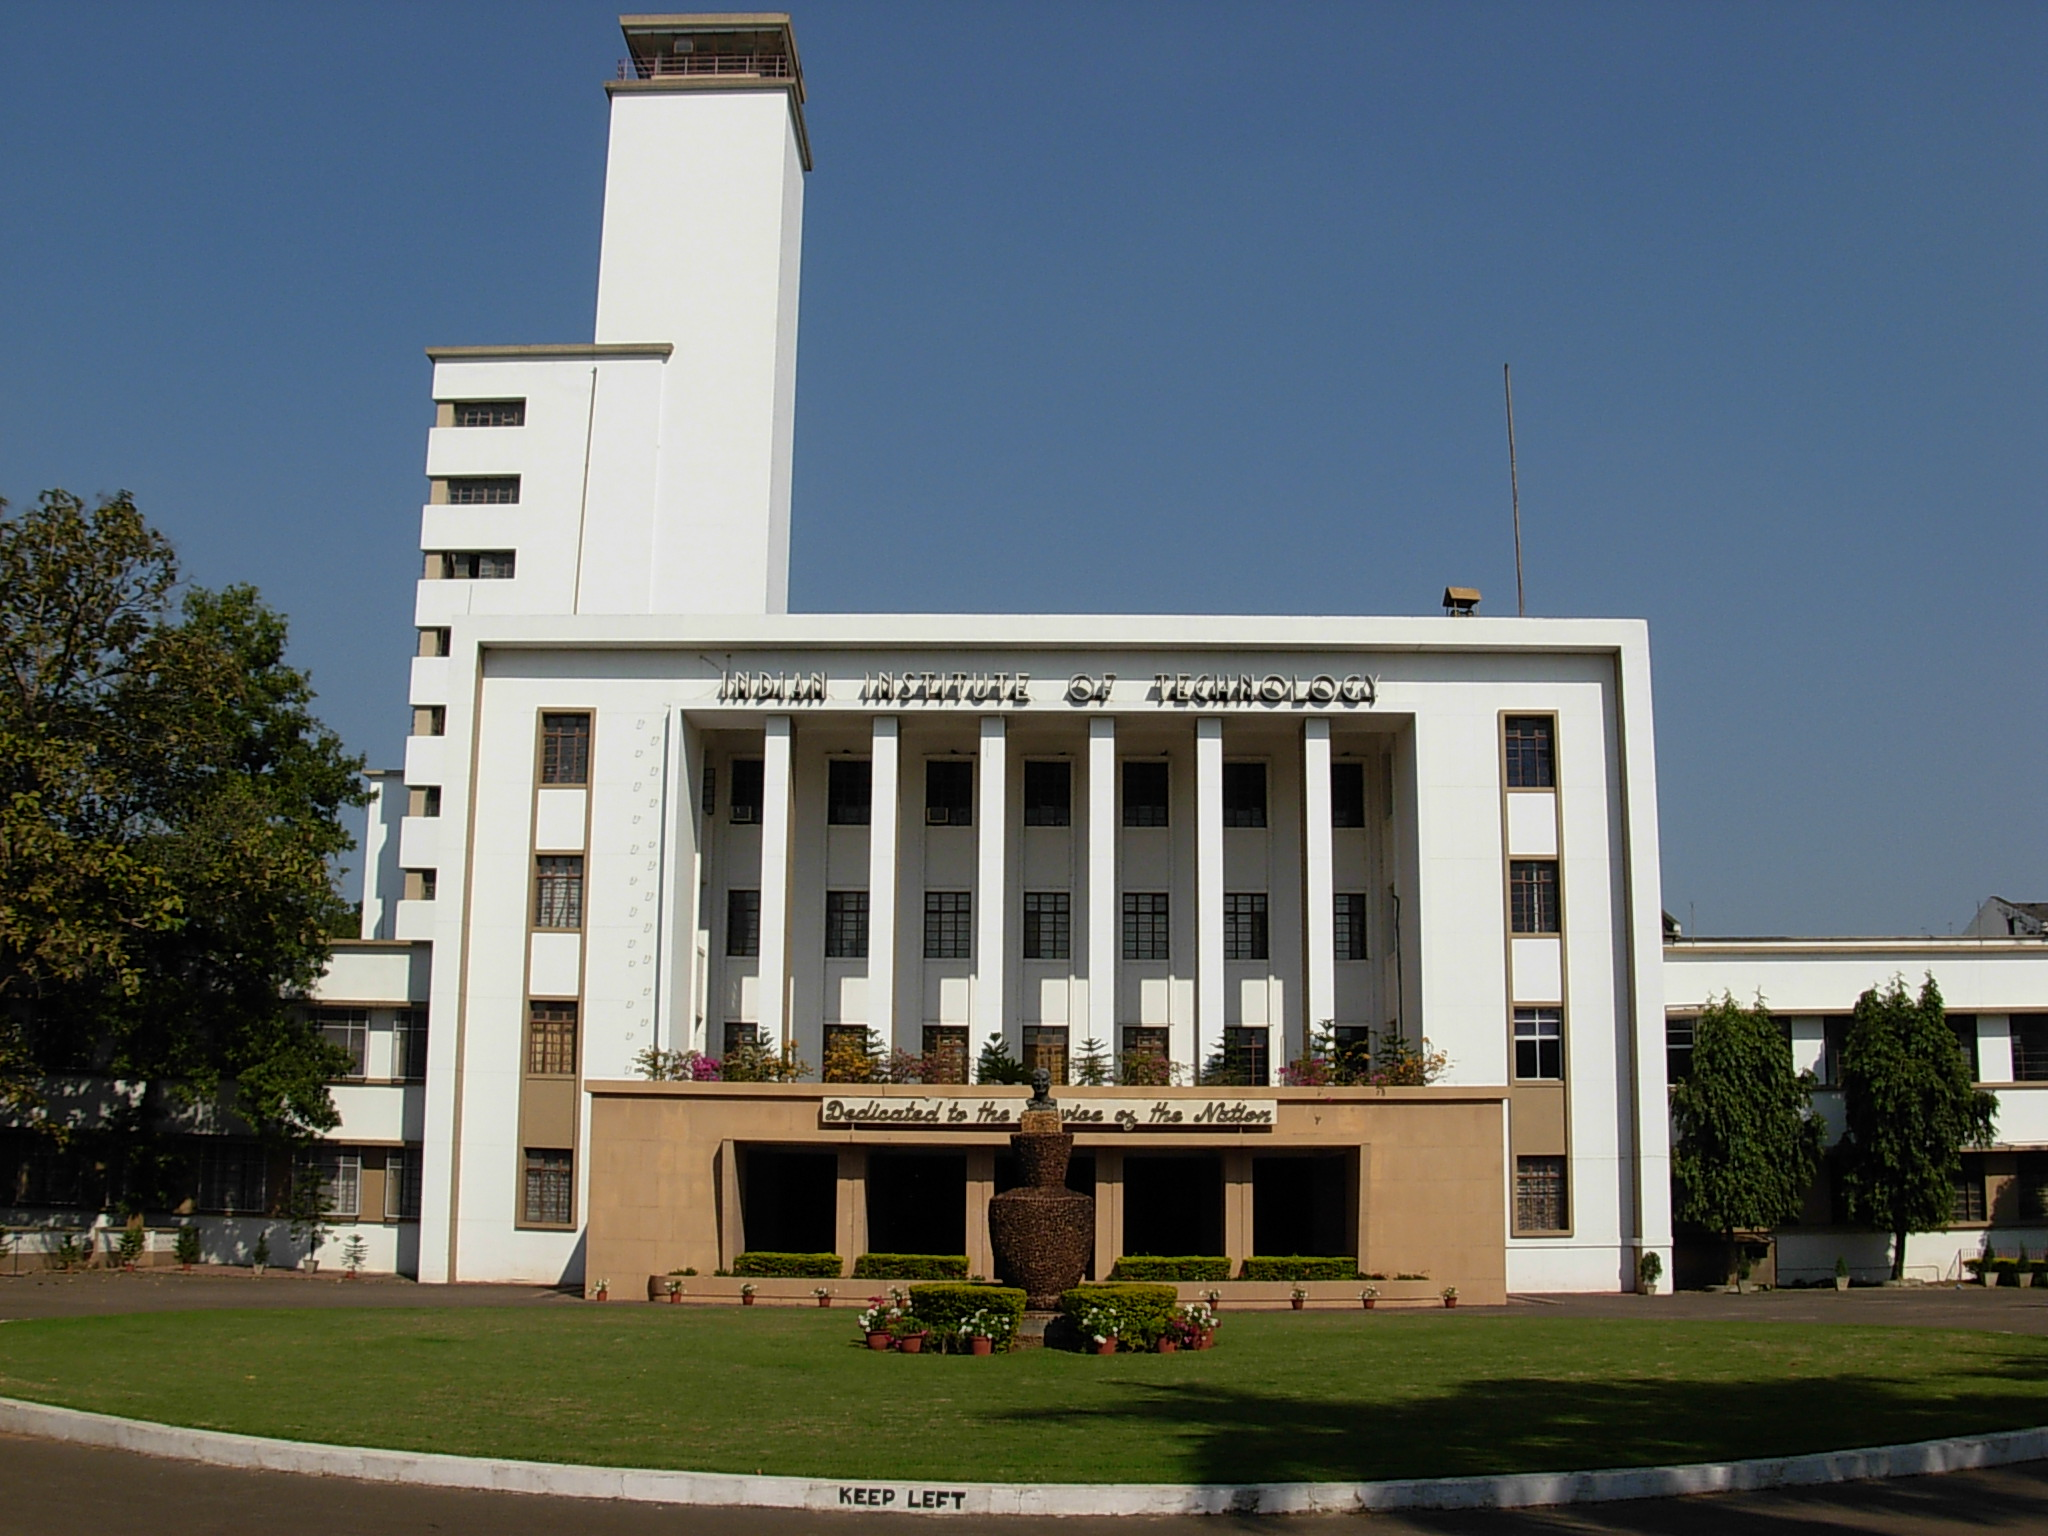 Indian institute of technology kharagpur - Student Uploaded Images